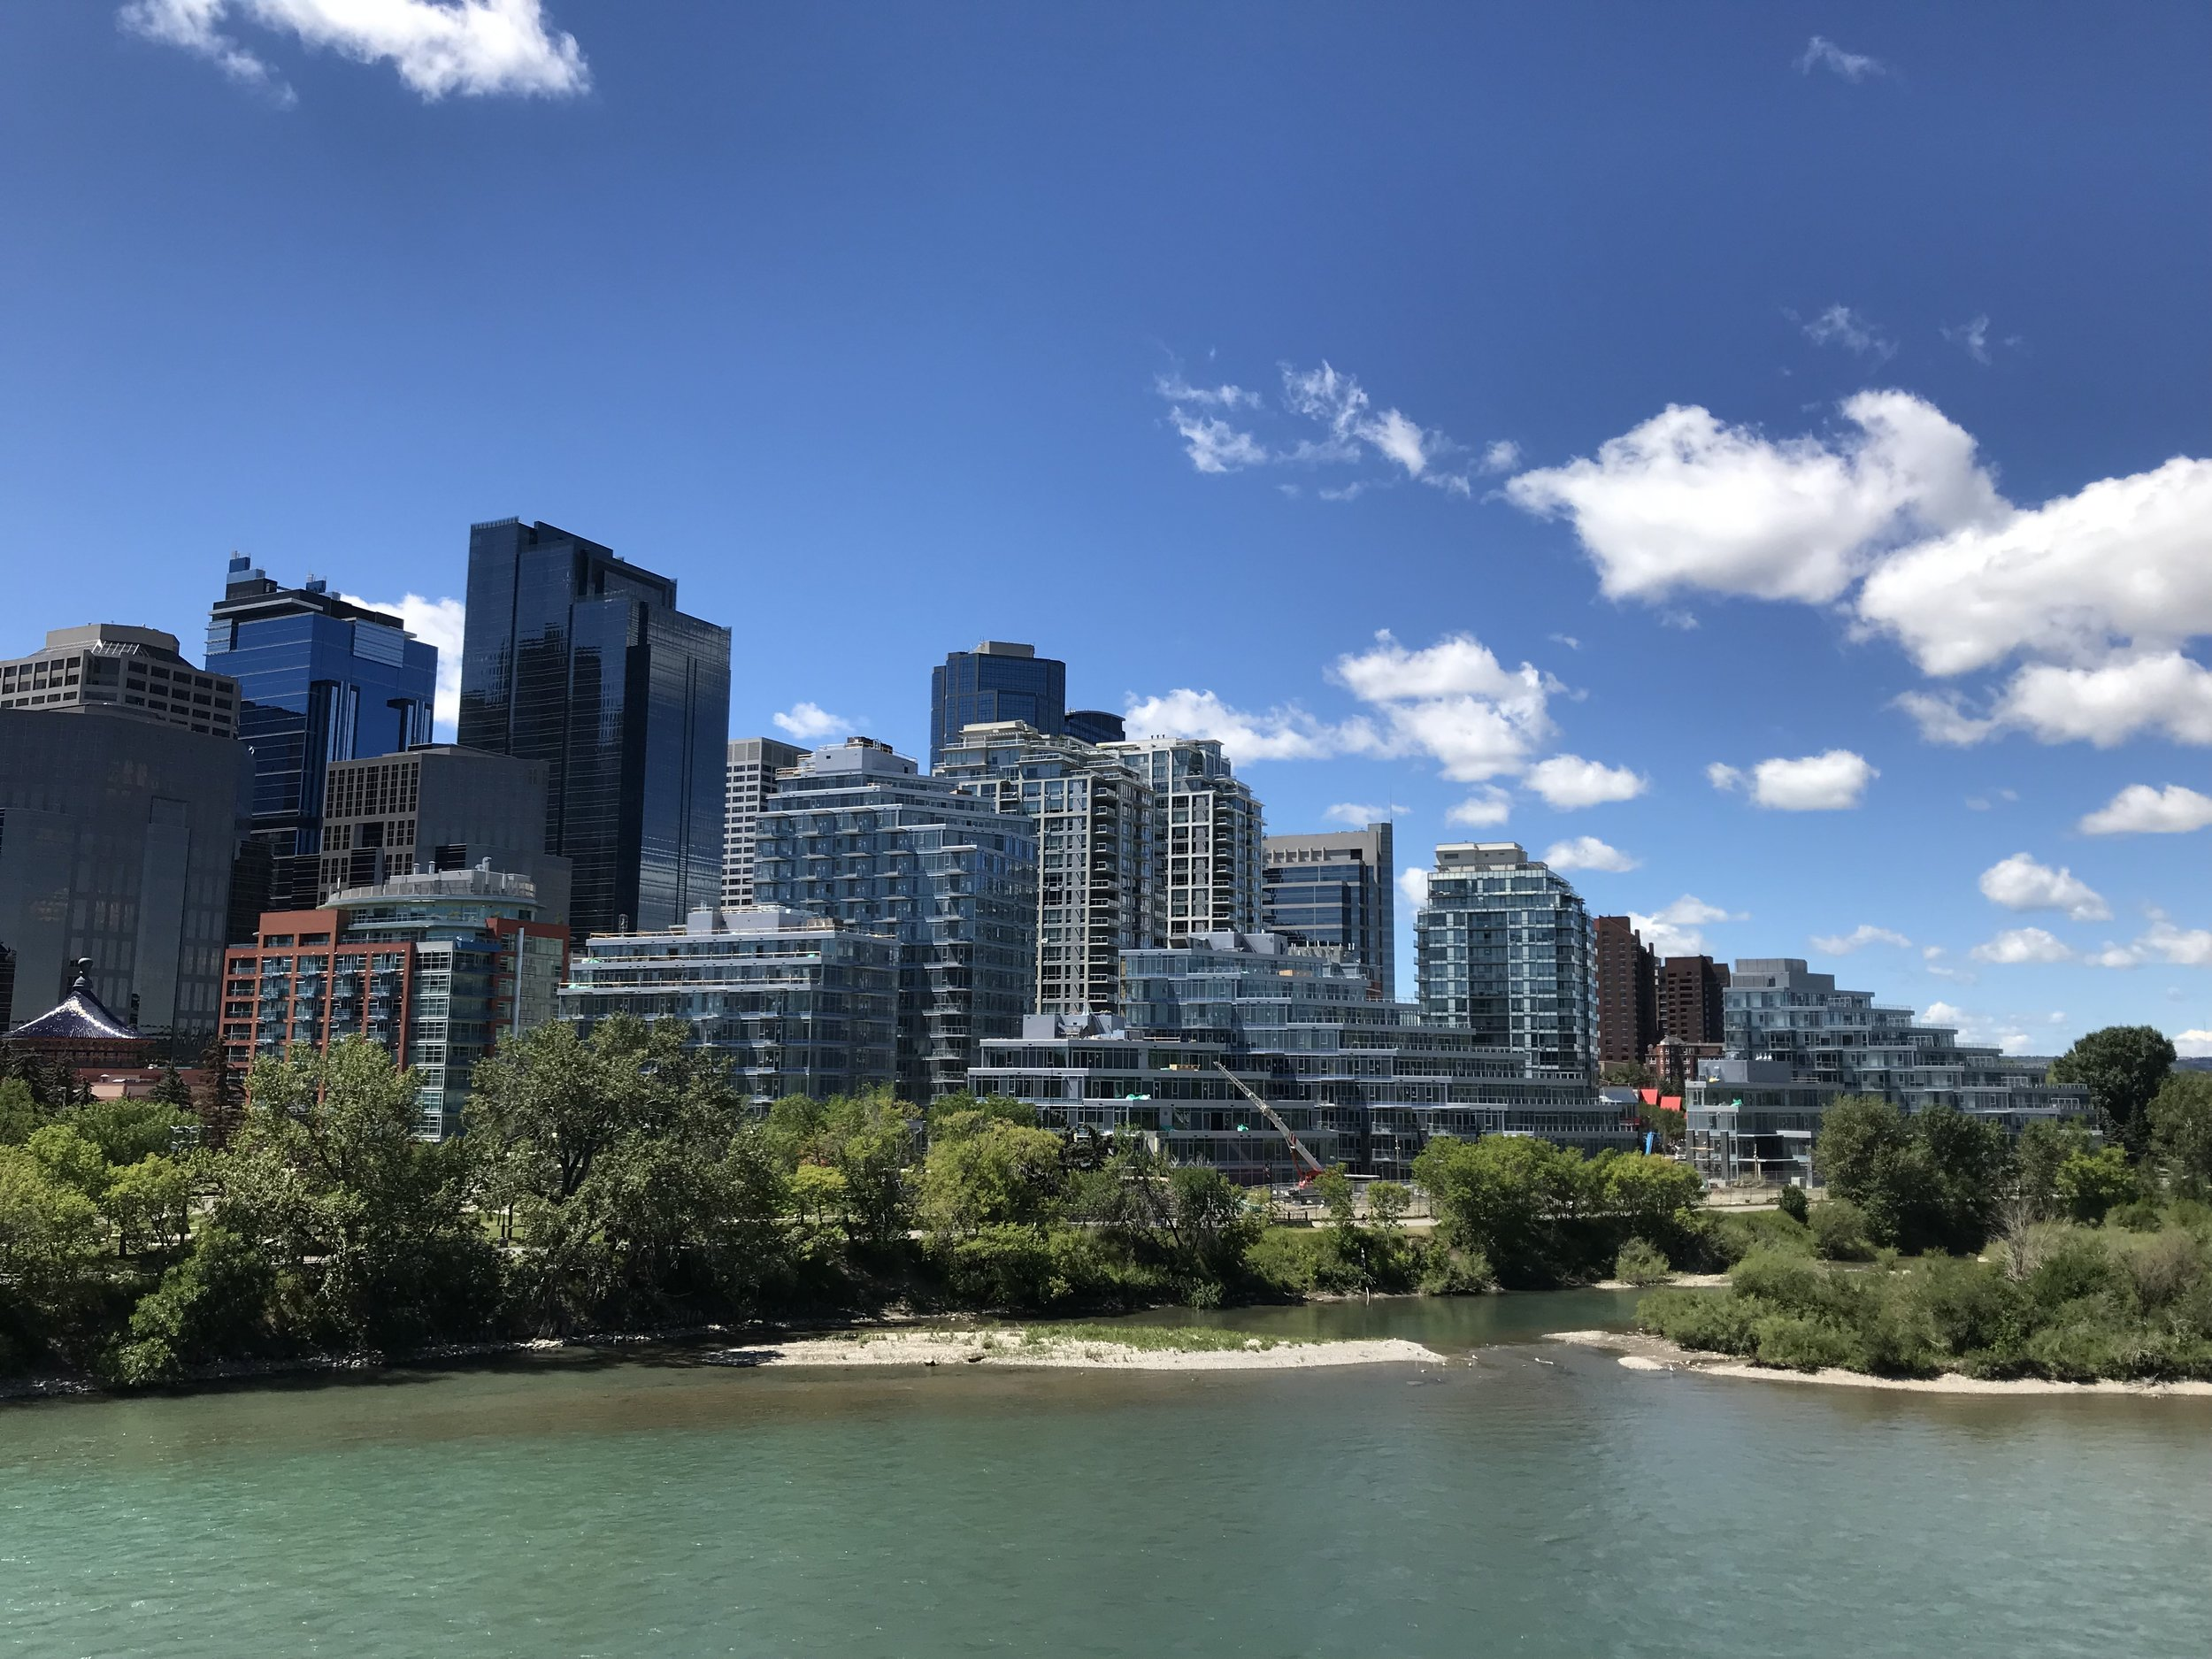 Today Eau Claire is a ribbon of residential development with the Bow River and Prince's Island on one side and the downtown office towers on the other.